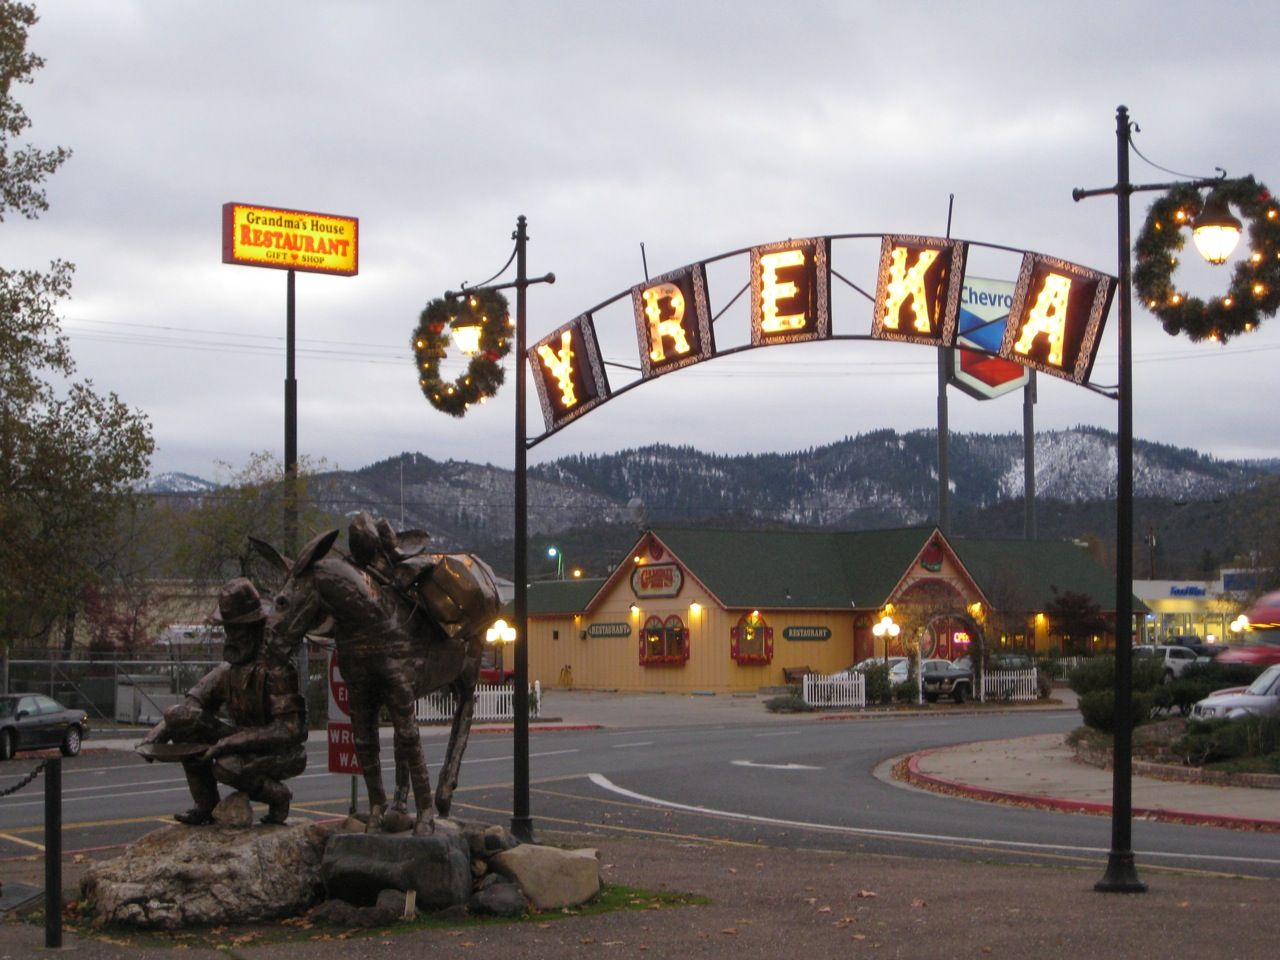 Yreka Jpg 1280 215 960 My California Weekends Pinterest